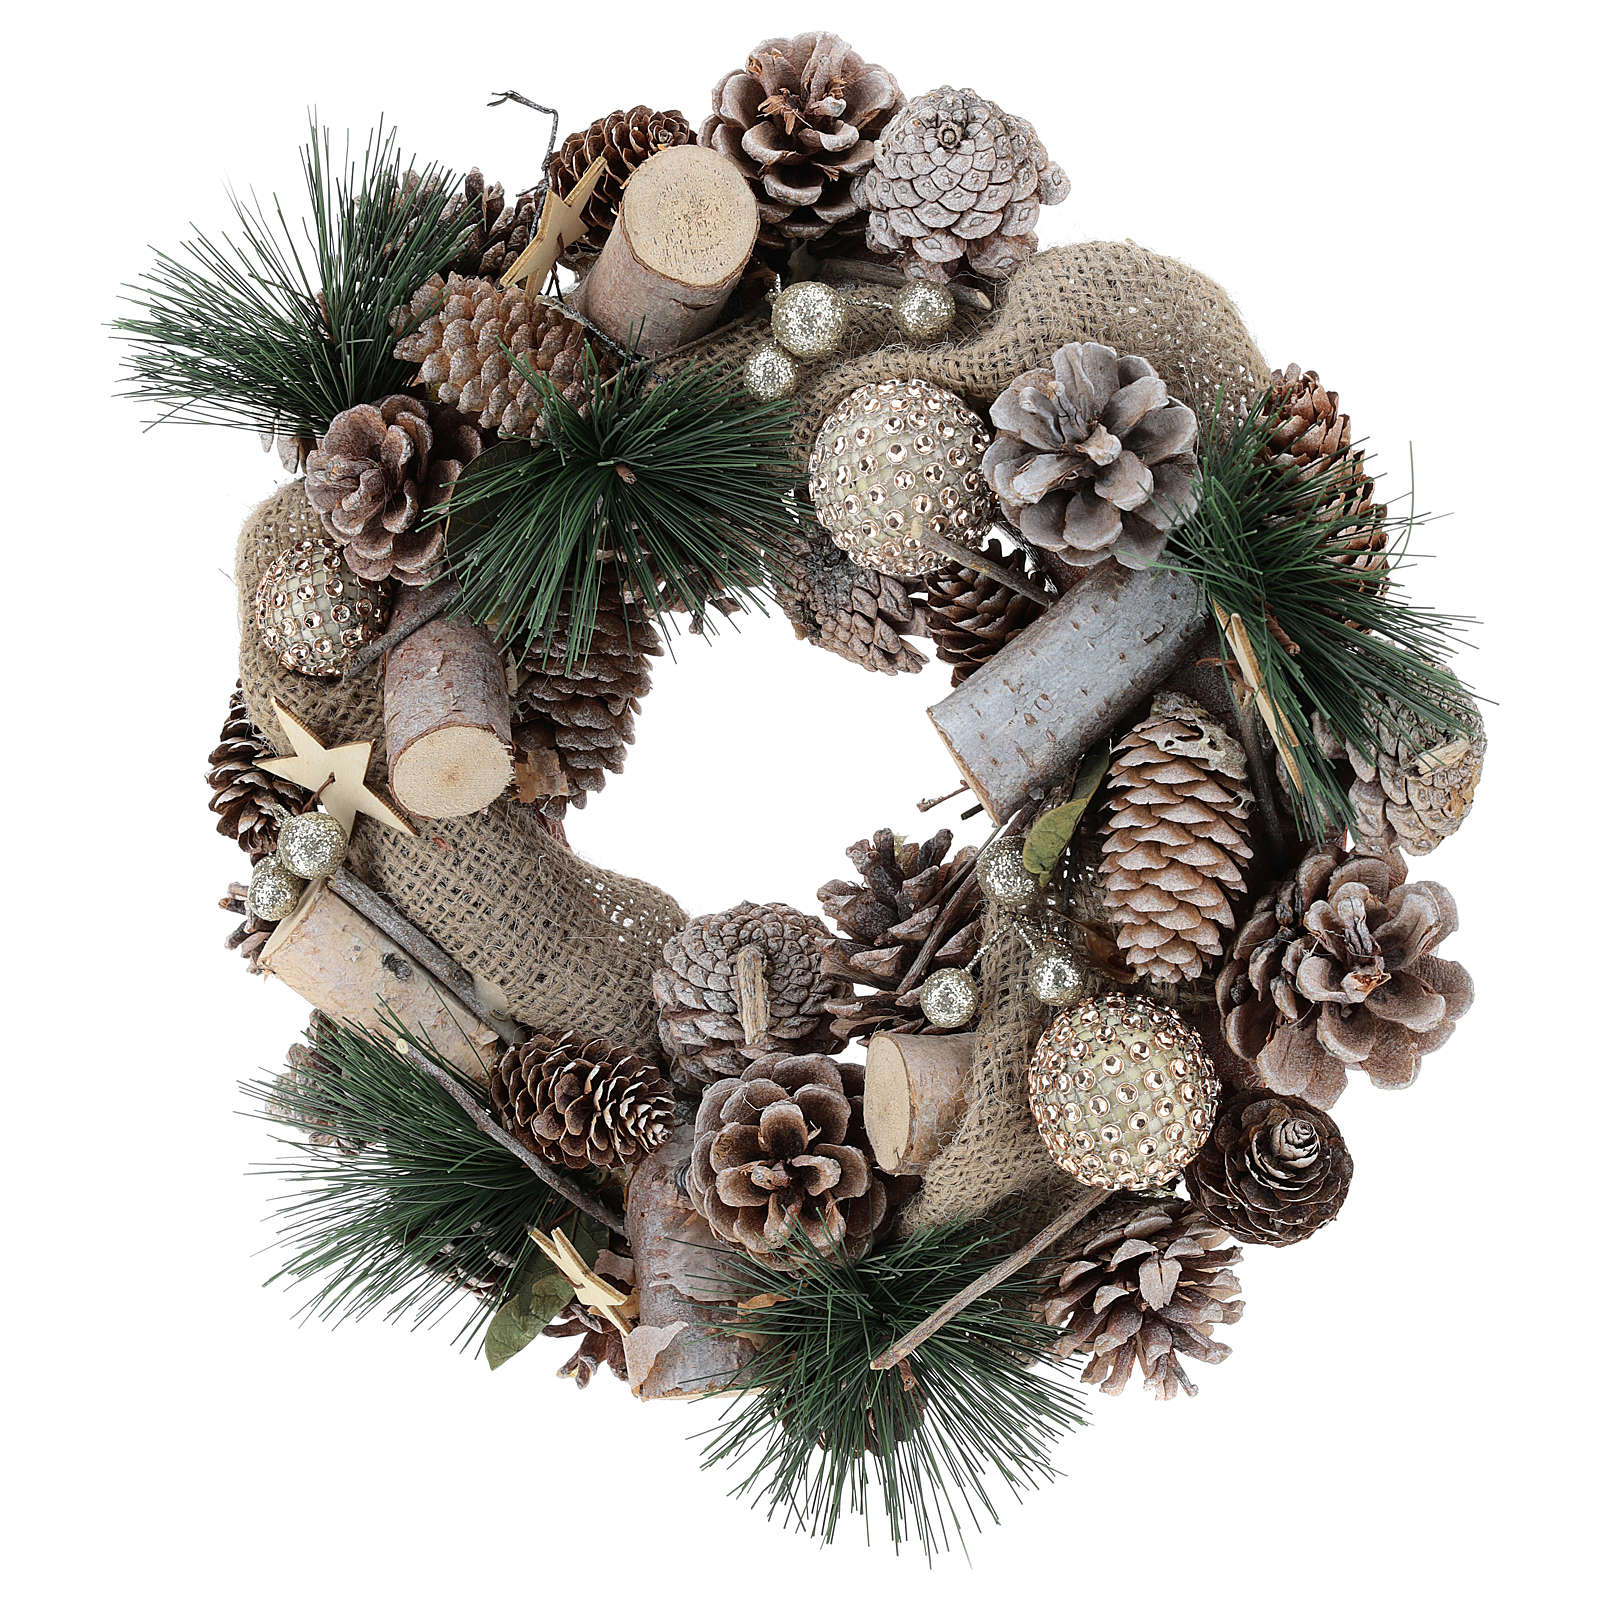 Christmas wreath with fake snow and Christmas balls diam. 32 cm 3